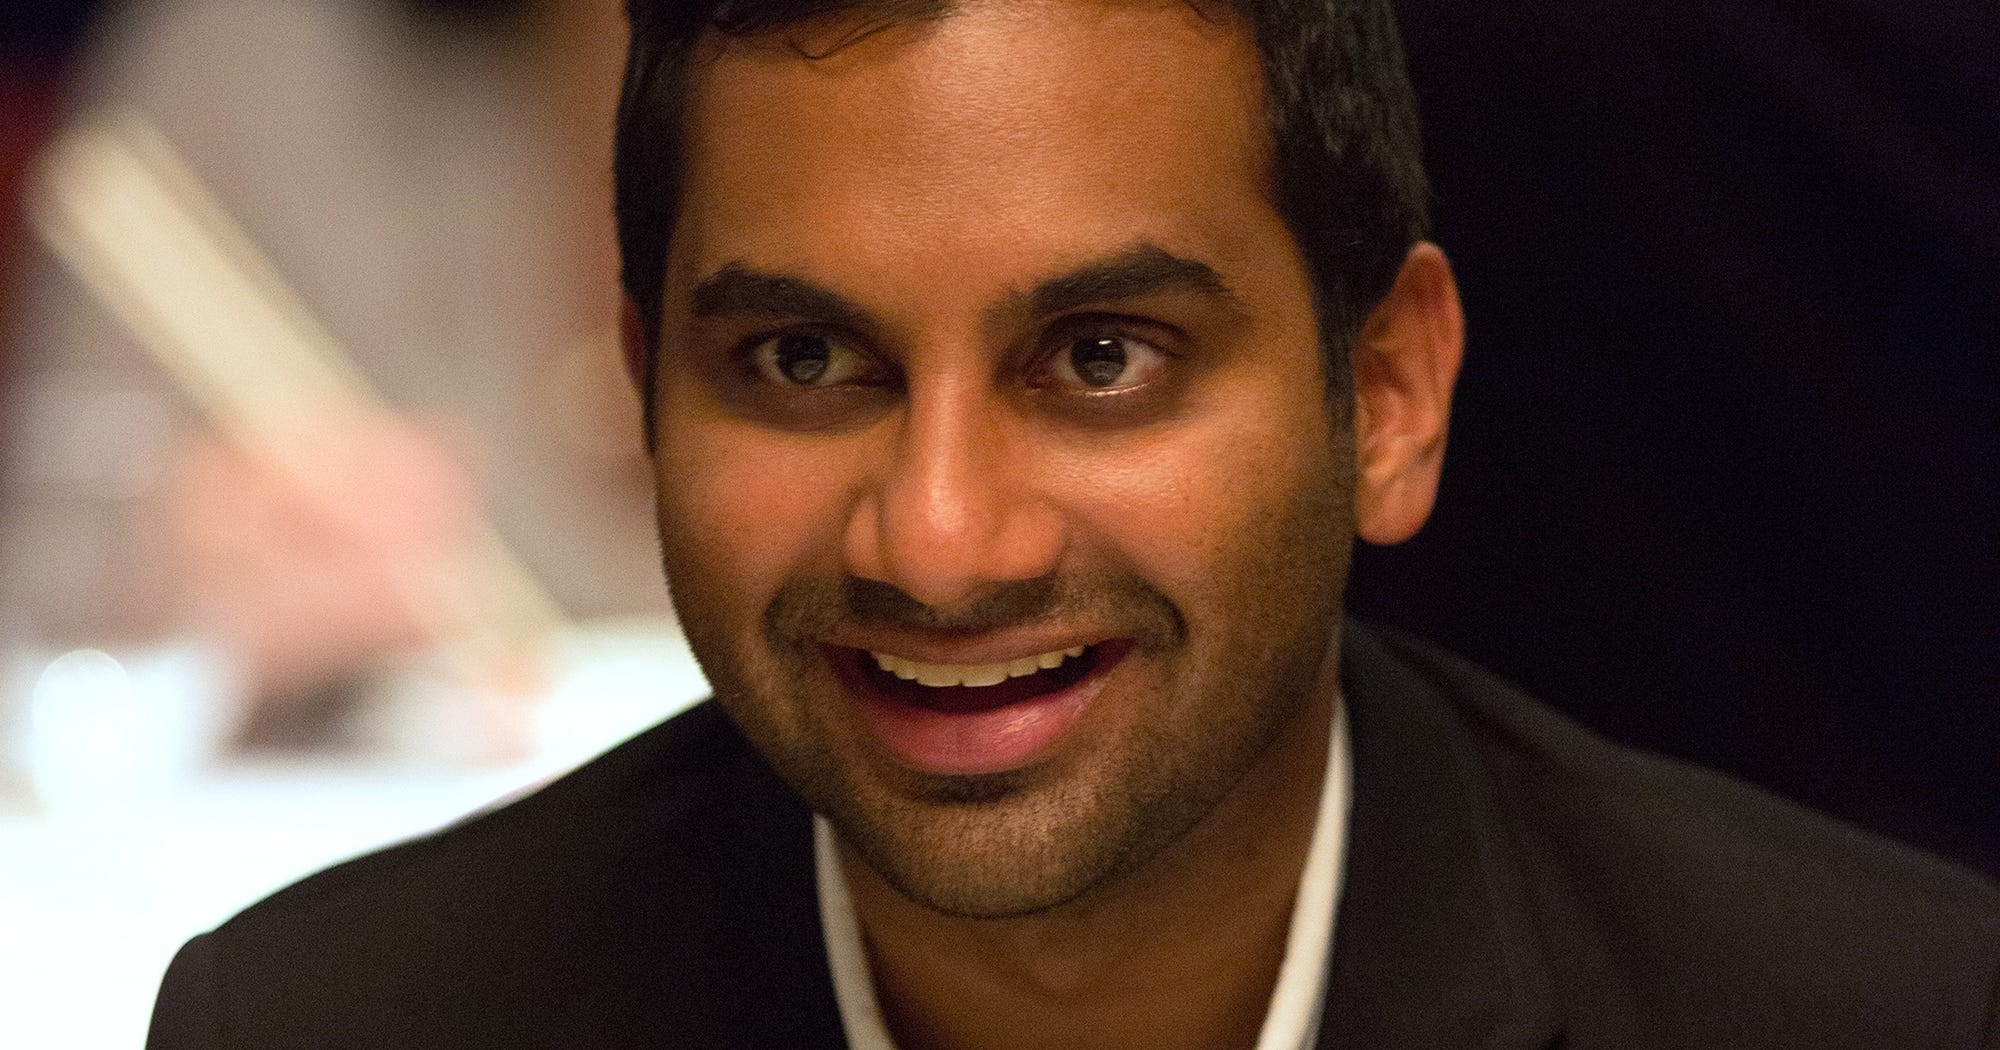 aziz ansari harris college essay video By now, aziz ansari's real parents have become regular guest stars on master of none, but you may have missed another familial cameo in the show's newly released season 2 ansari's cousin, harris.